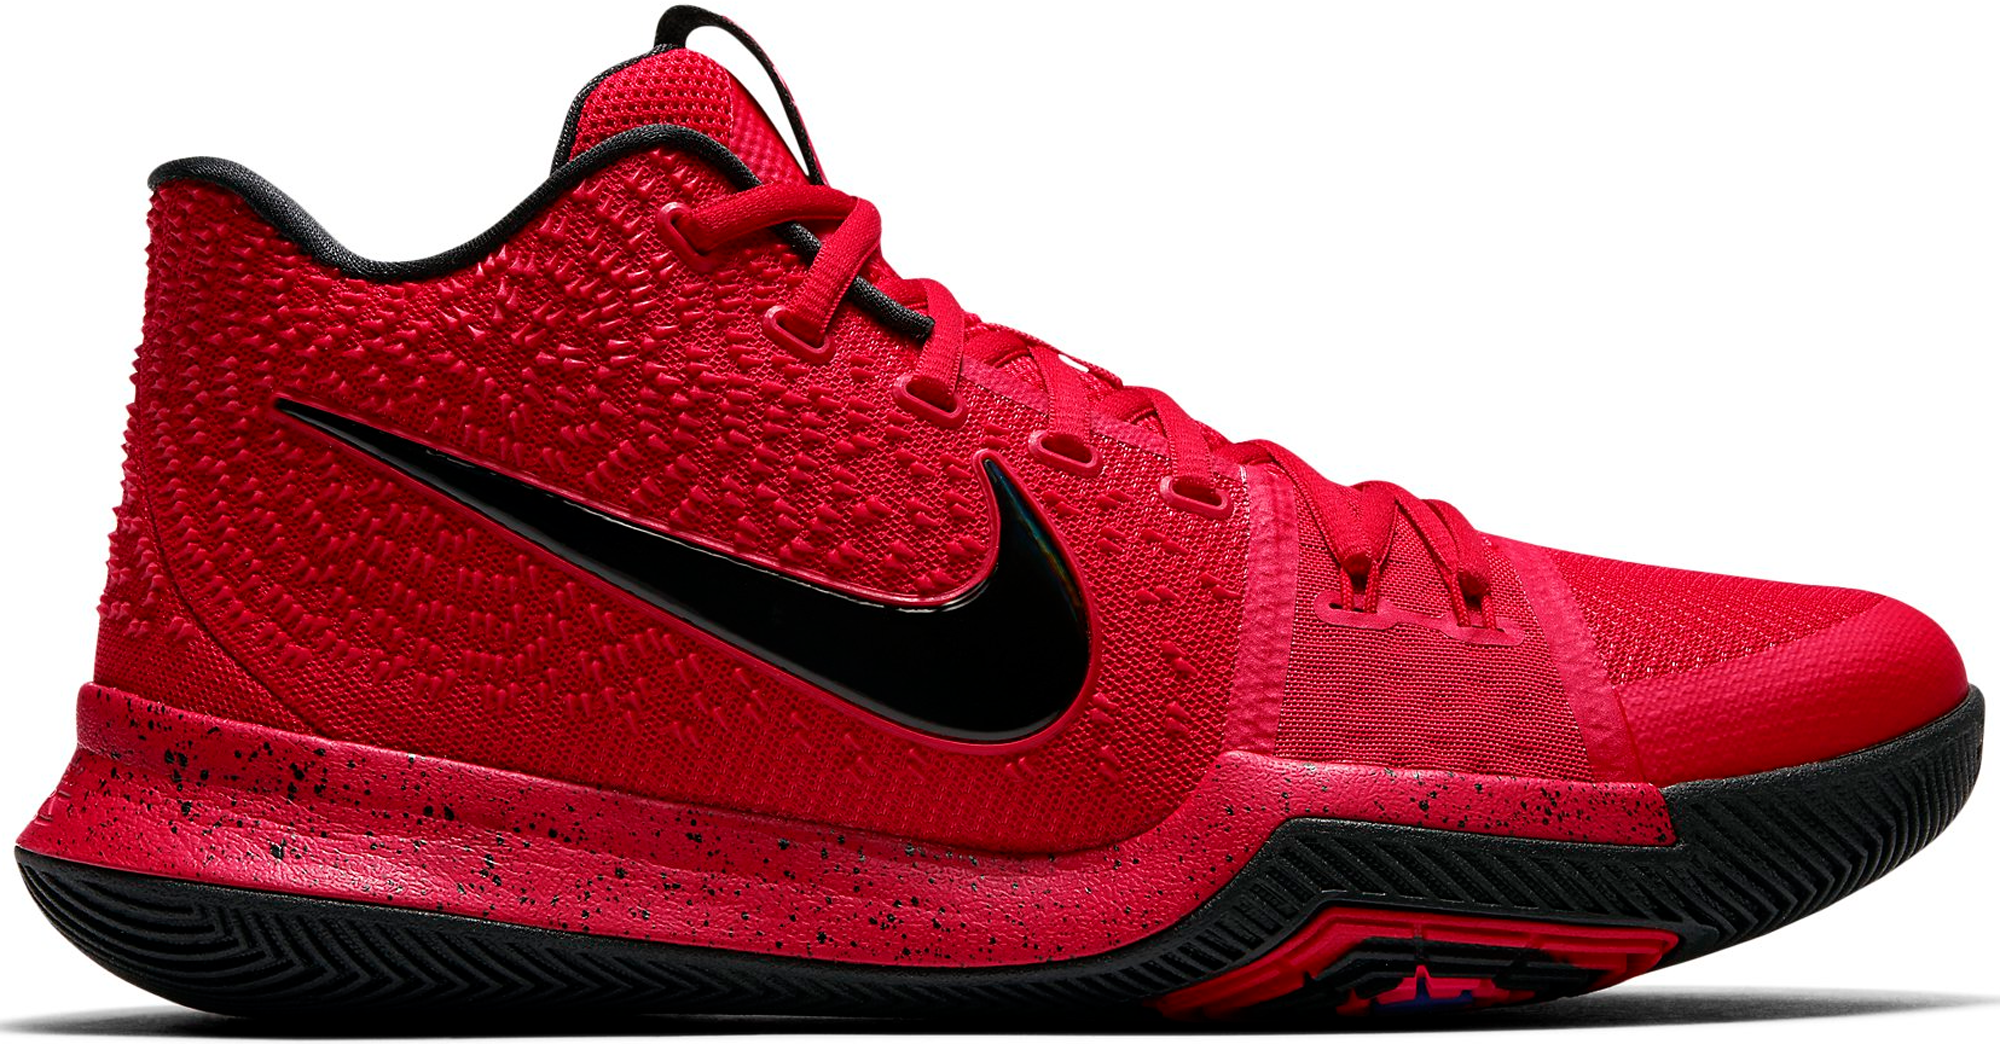 denmark nike kyrie 3 red and black velvet 4e9b2 1dc36